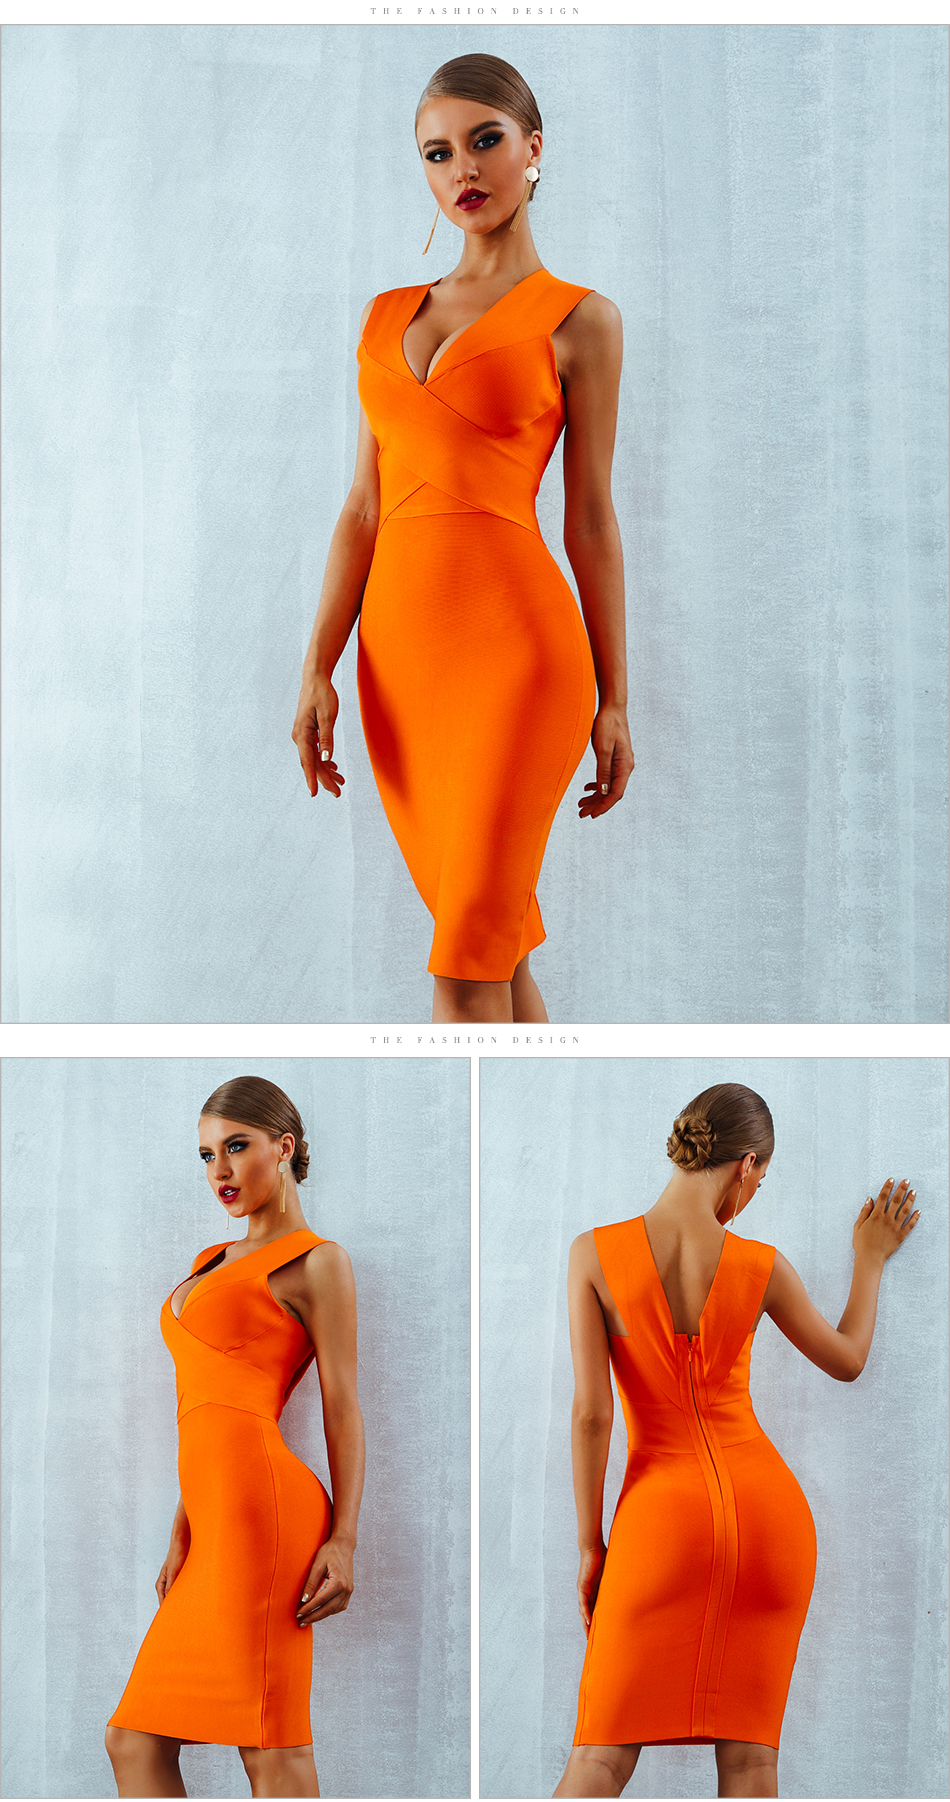 ADYCE Summer Women Bandage Dress Vestidos Verano 2019 Orange Red Tank Sexy Deep V-Neck Sleeveless Bodycon Celebrity Party Dress 6